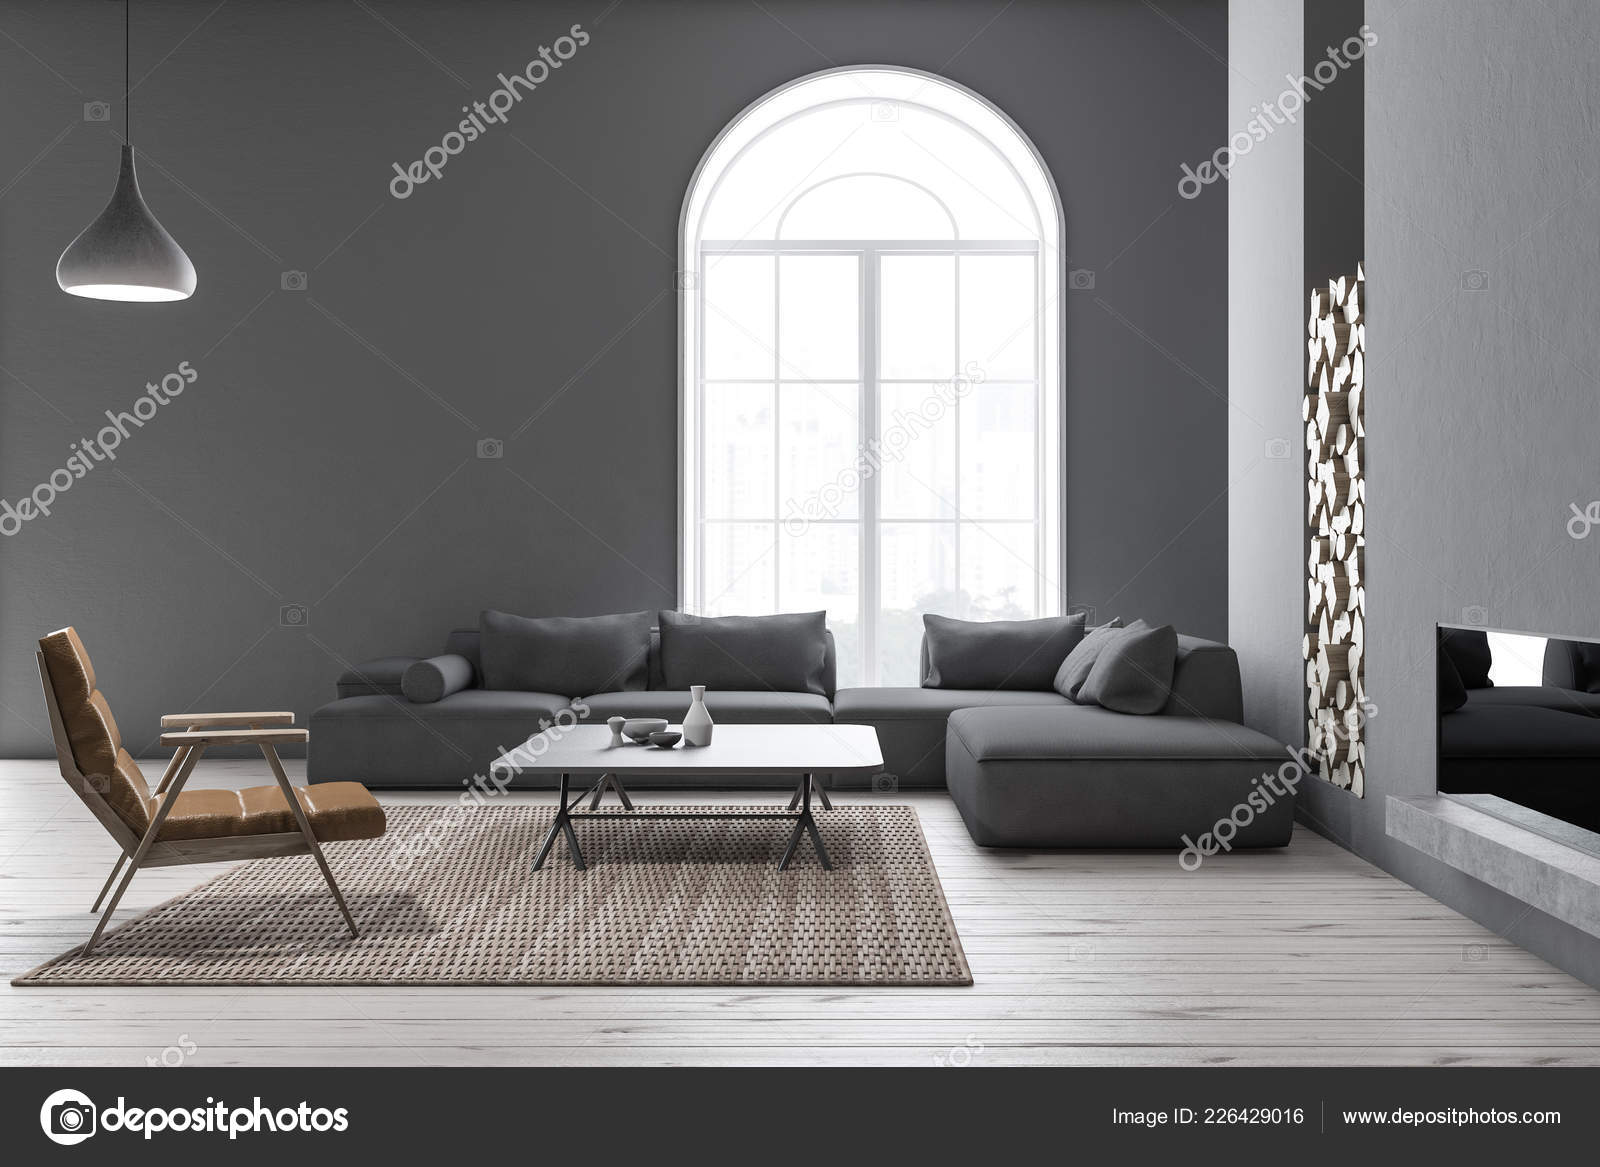 Interior Modern Living Room Gray Walls Wooden Floor Arched Window